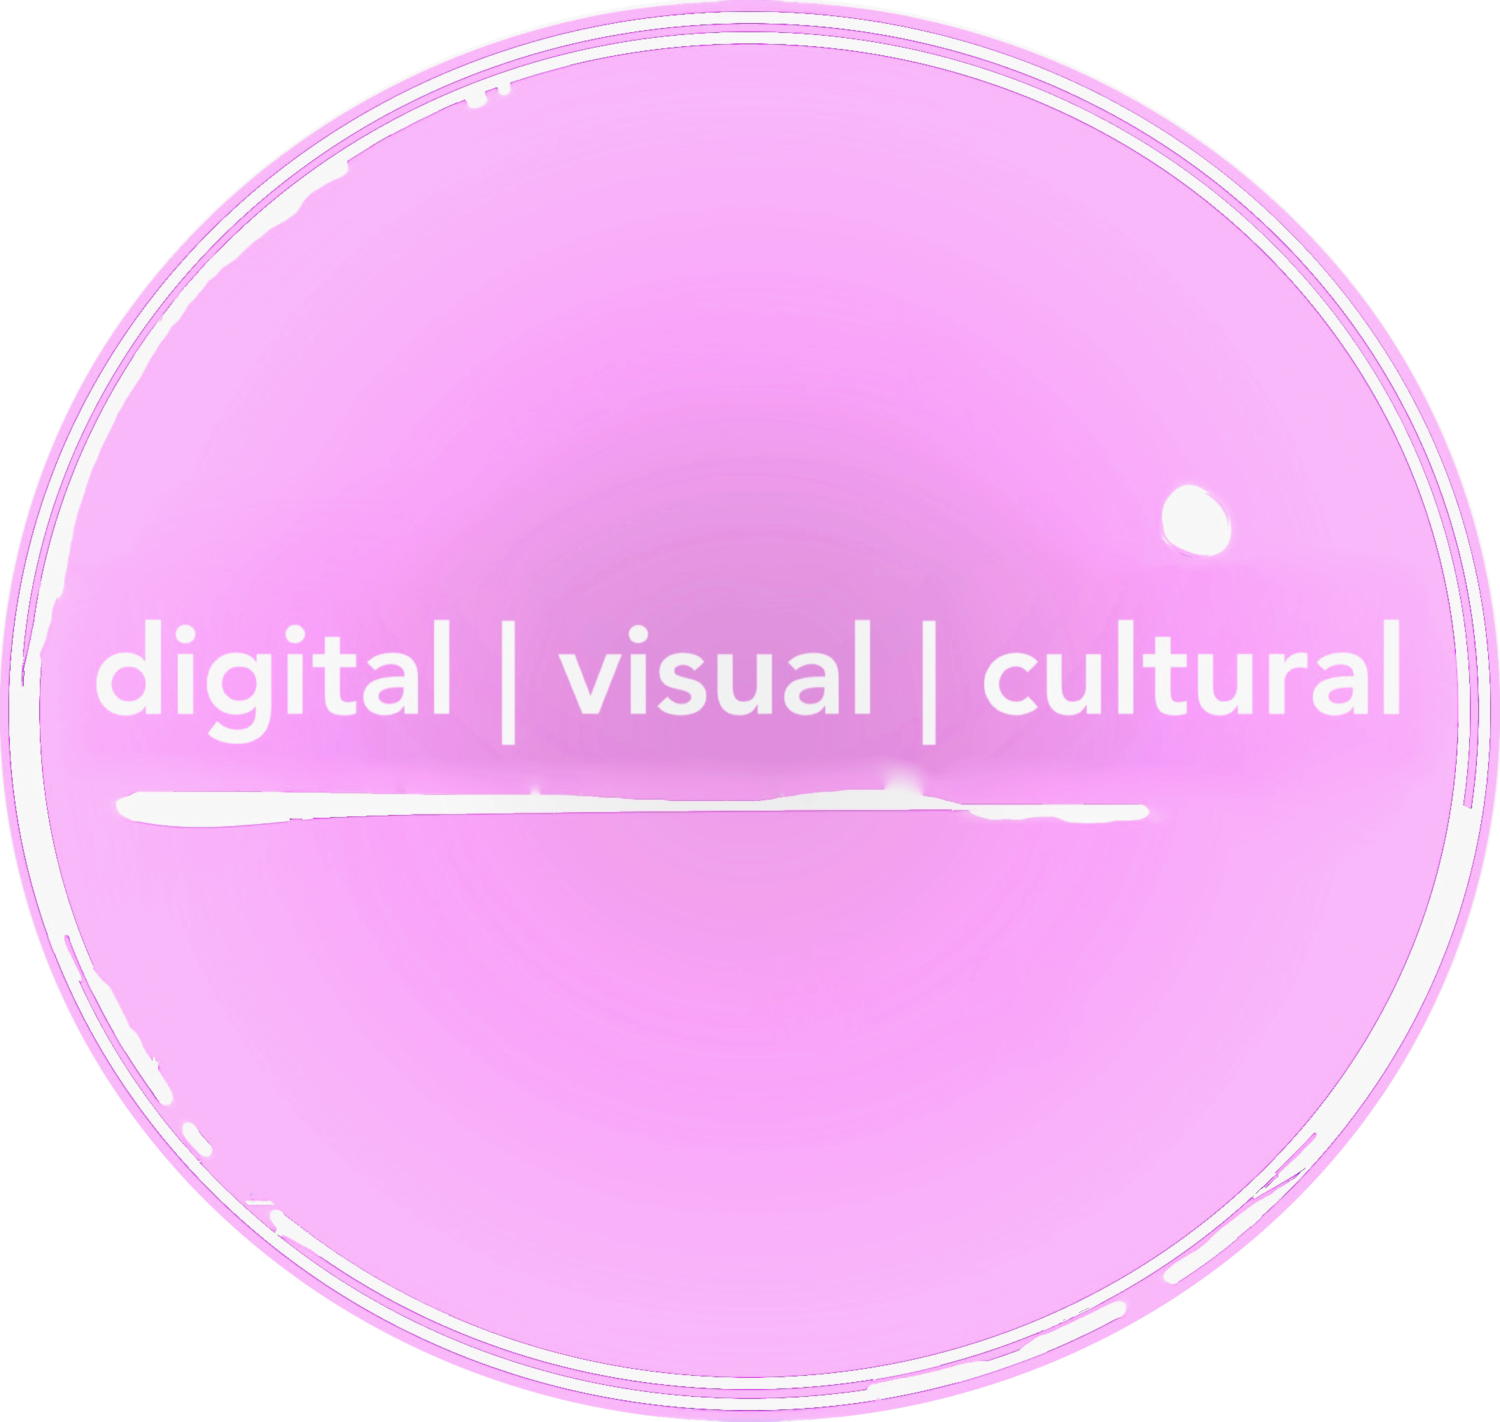 digital | visual | cultural